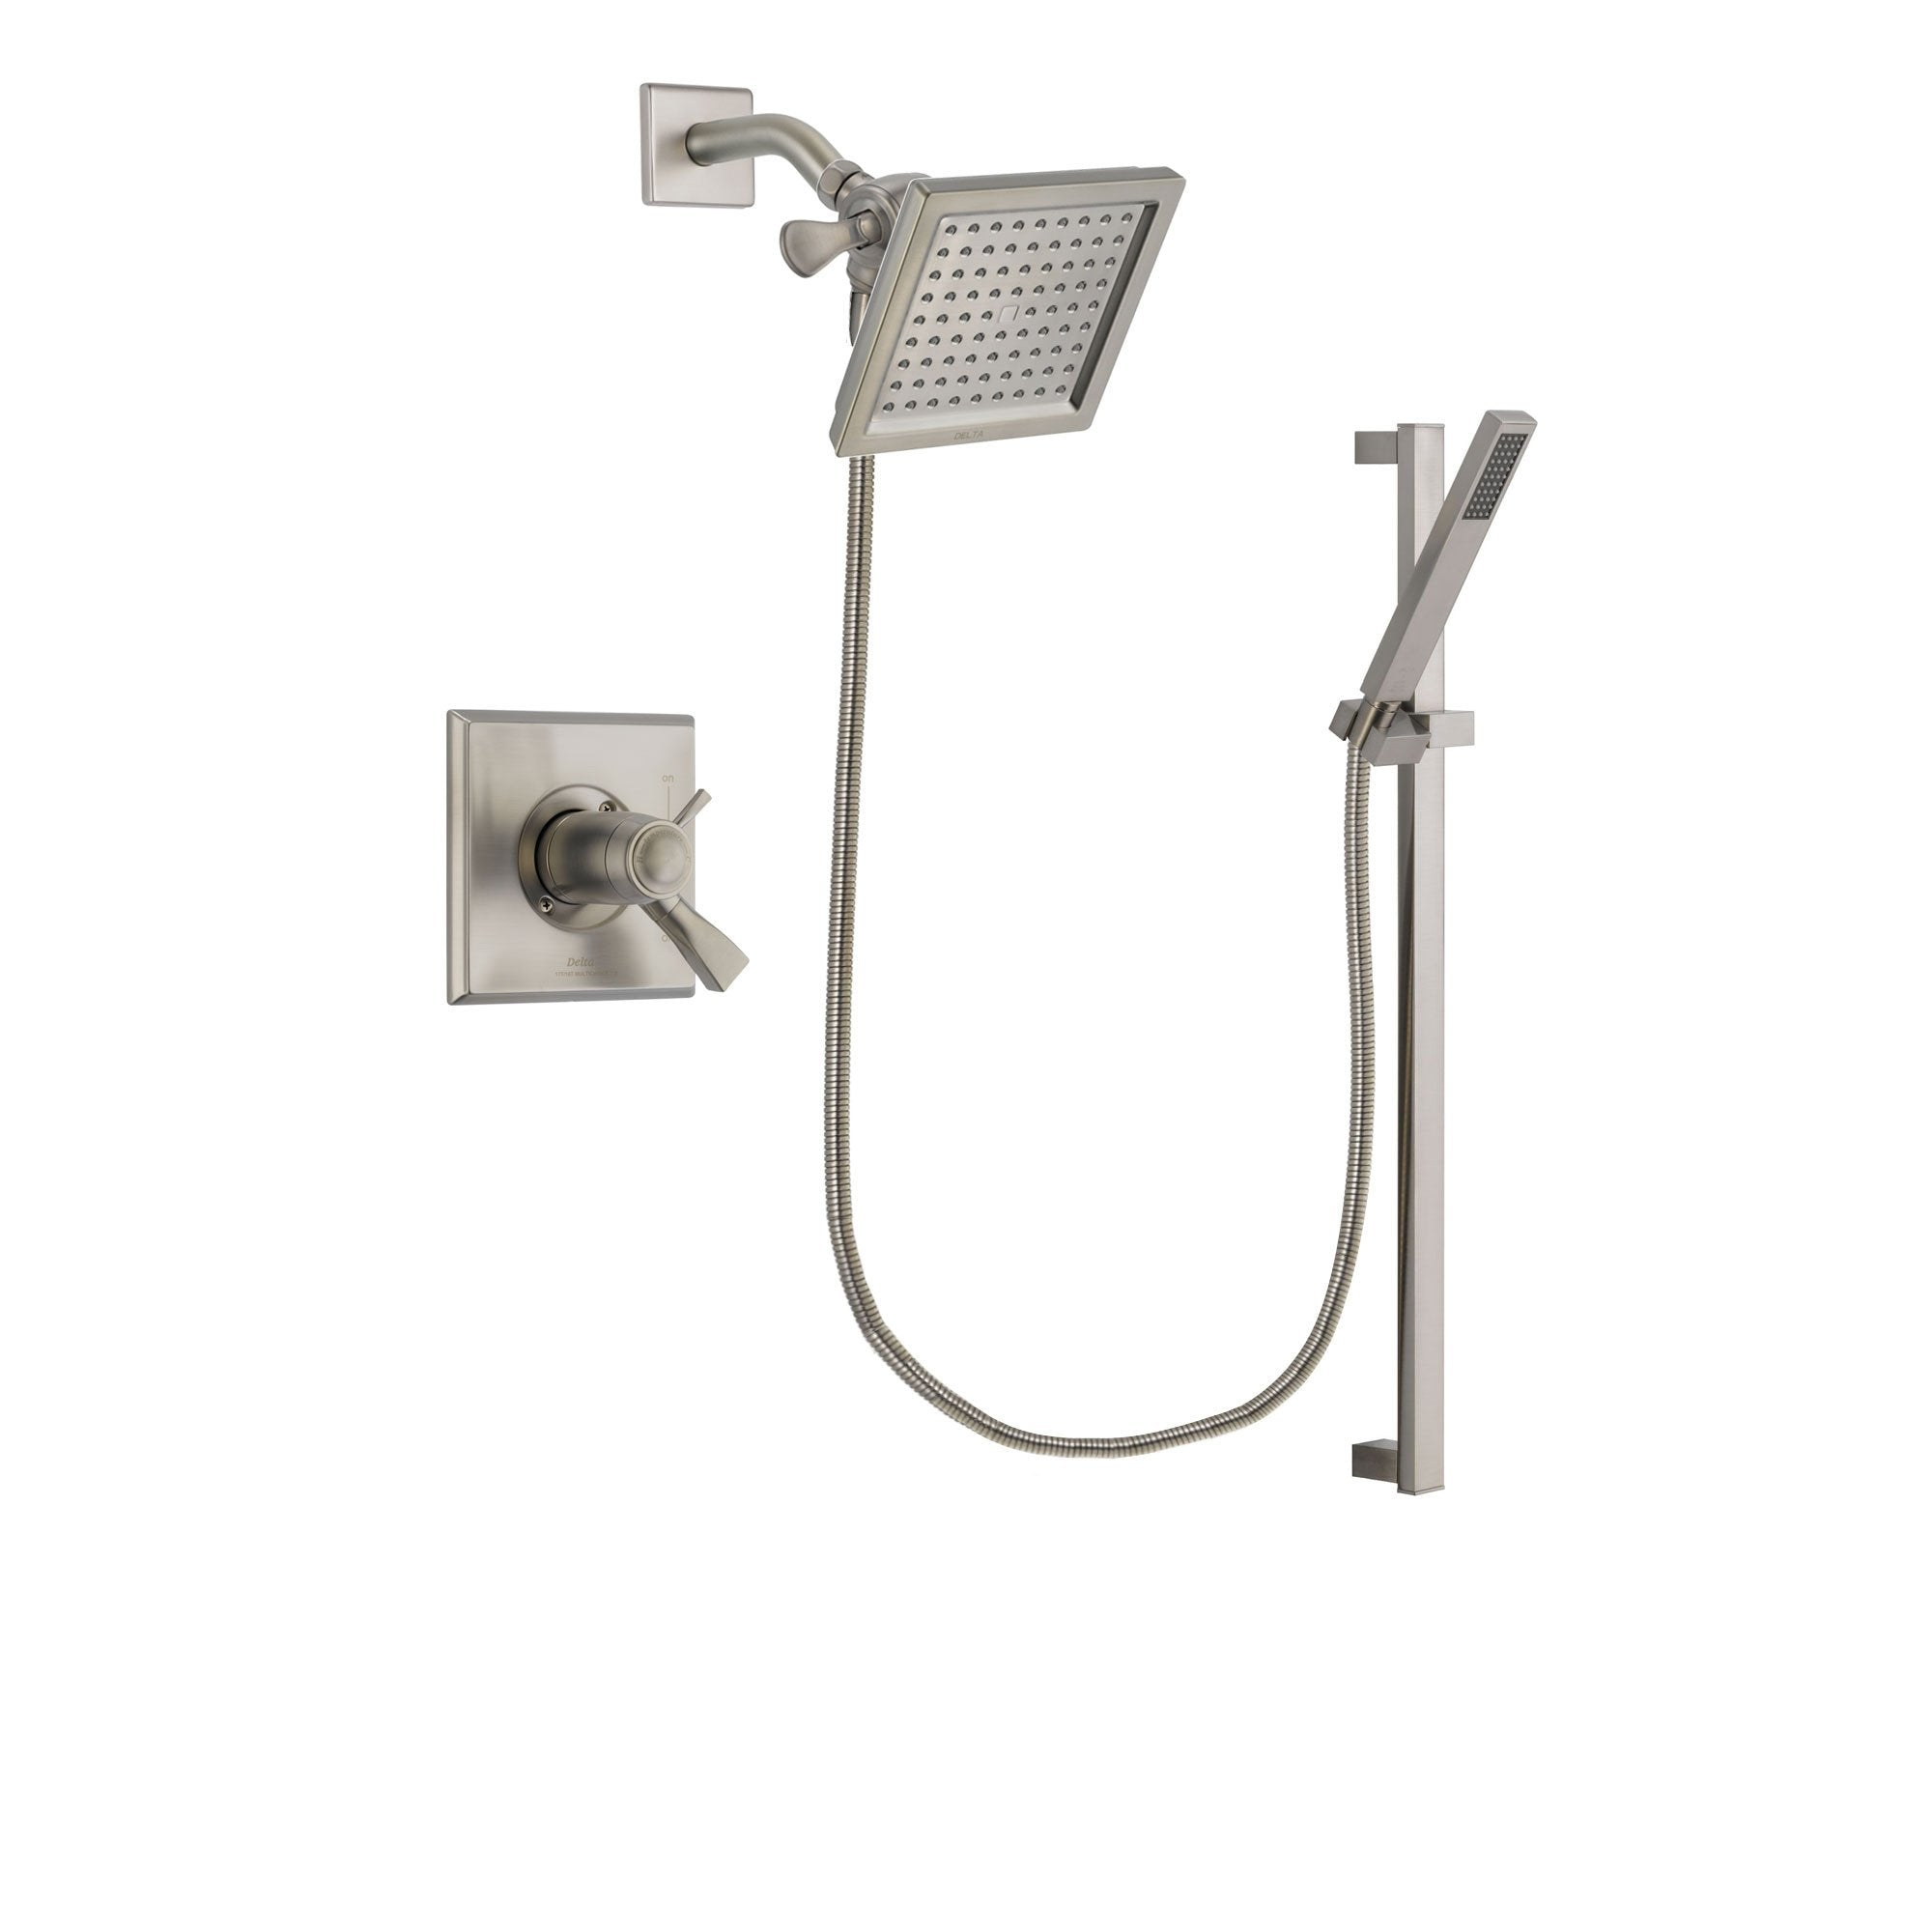 Delta Dryden Stainless Steel Finish Shower Faucet System w/ Hand Spray DSP2346V